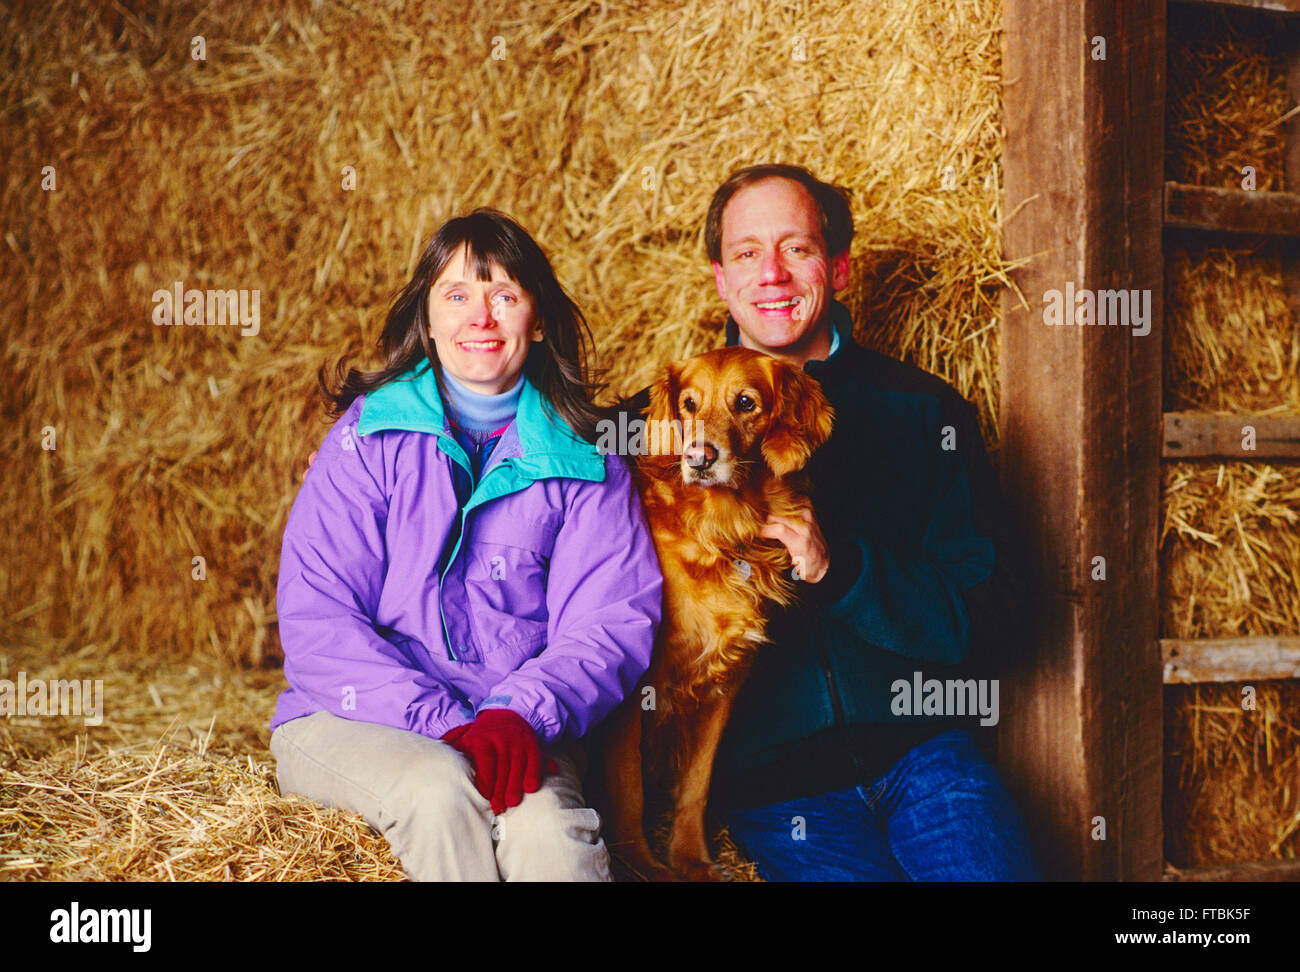 Environmental portrait in a barn of Photographer H. Mark Weidman; writer Marjorie Ackermann; and their Golden Retriever; - Stock Image